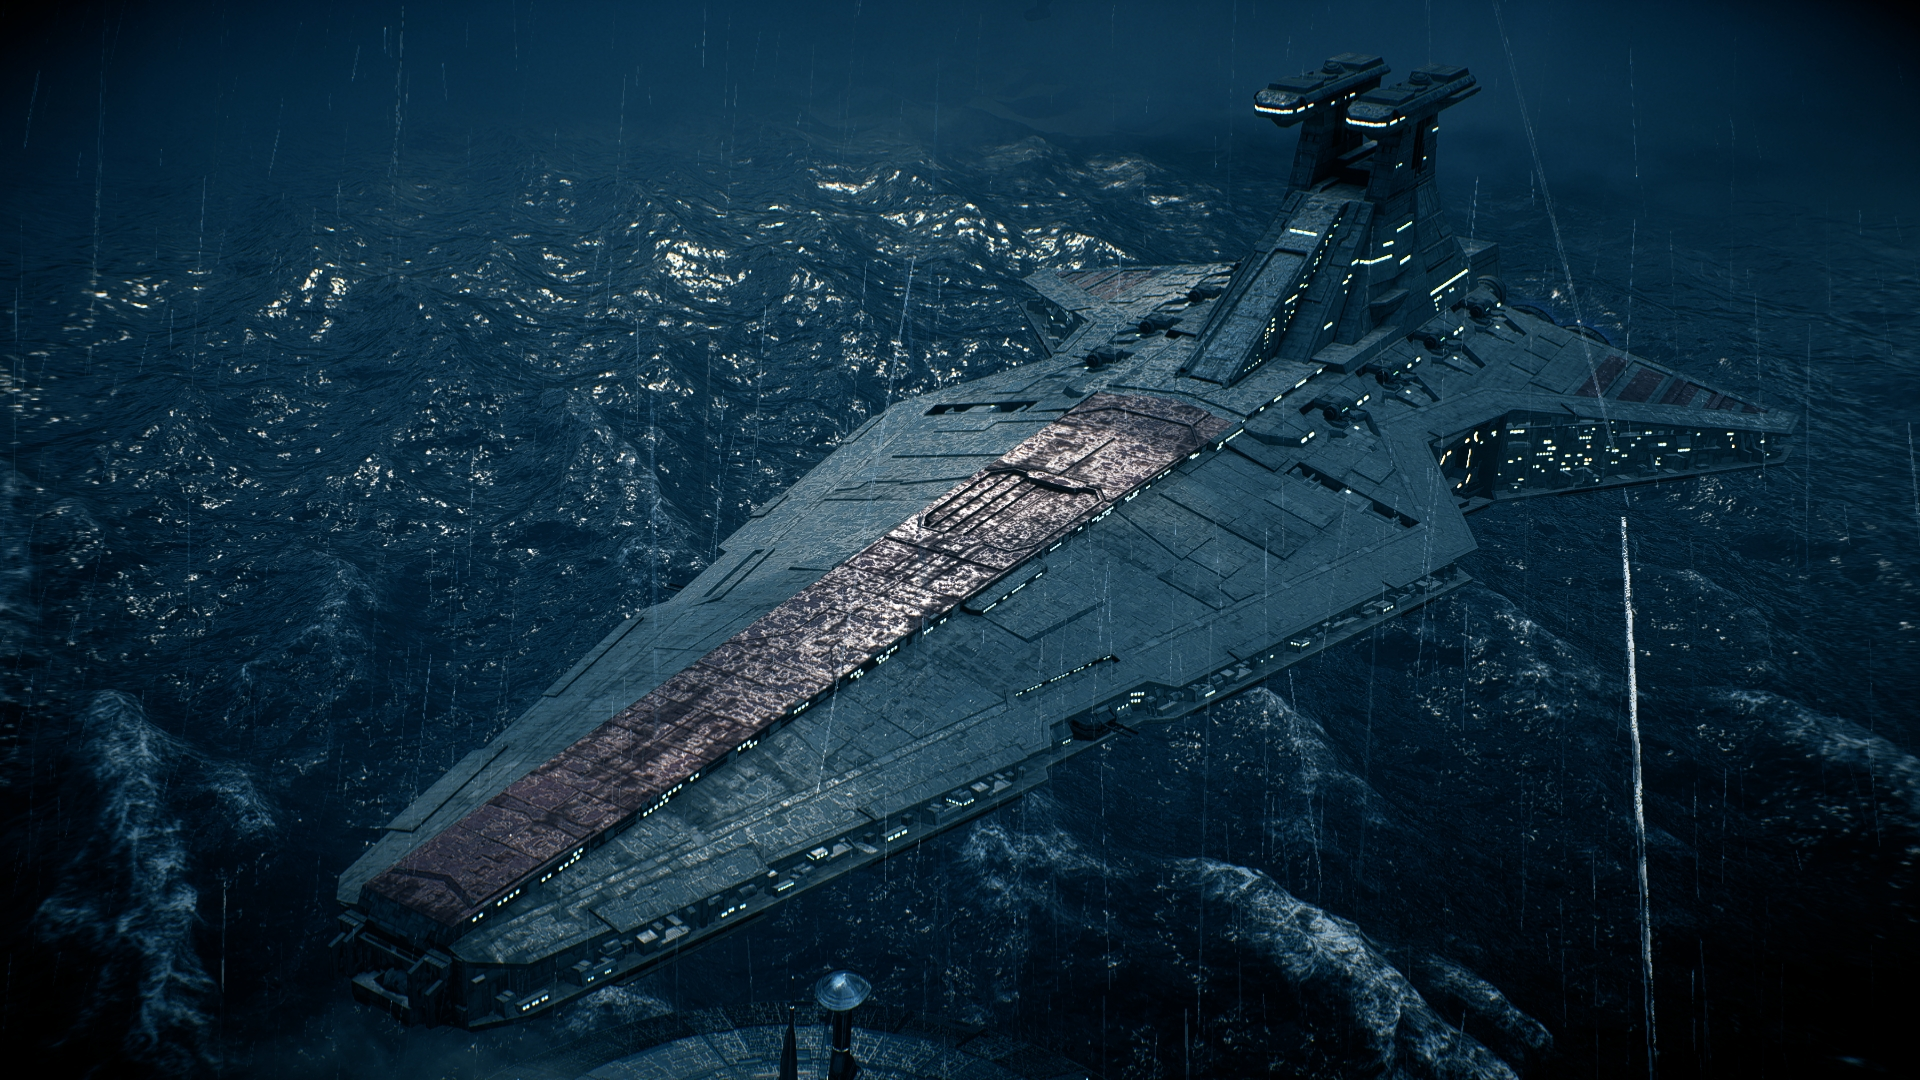 3 venator-class star destroyer hd wallpapers | background images